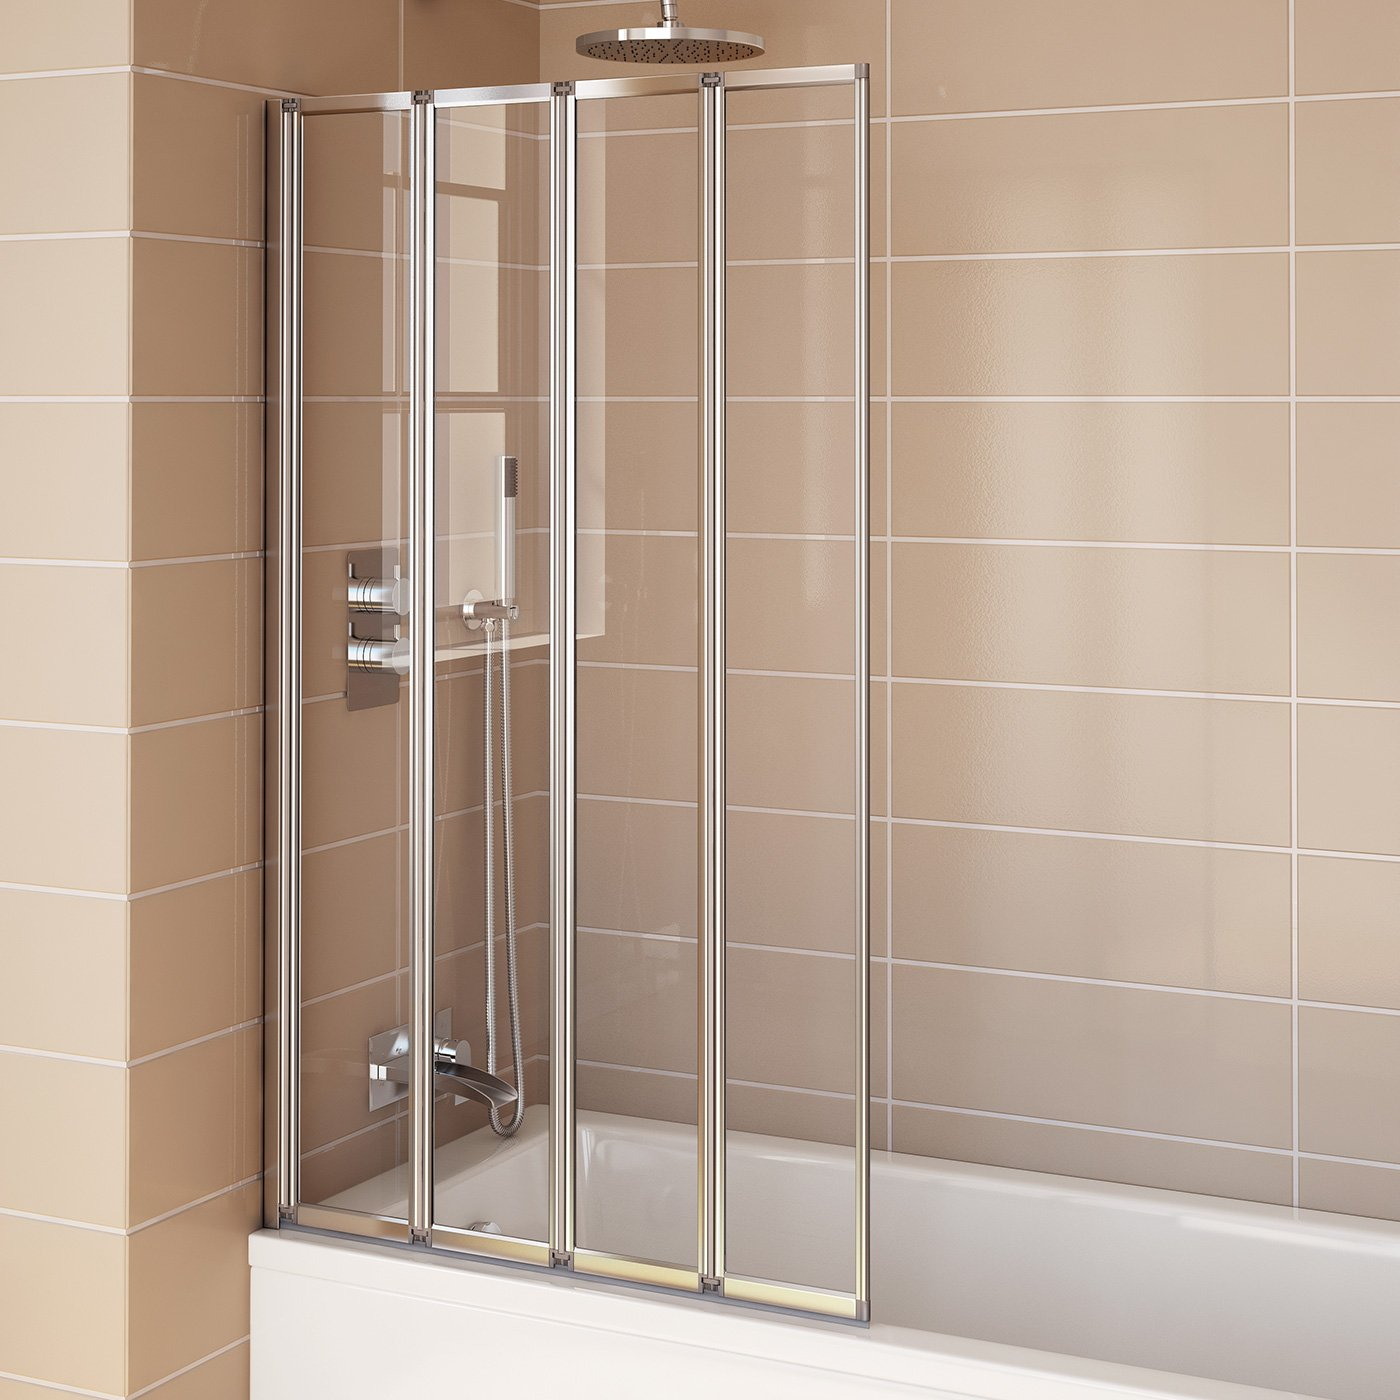 800mm Modern Pivot Folding Bath Shower Glass Screen Reversible Door Panel iBathUK Amazon.co.uk DIY u0026 Tools : bath door - pezcame.com